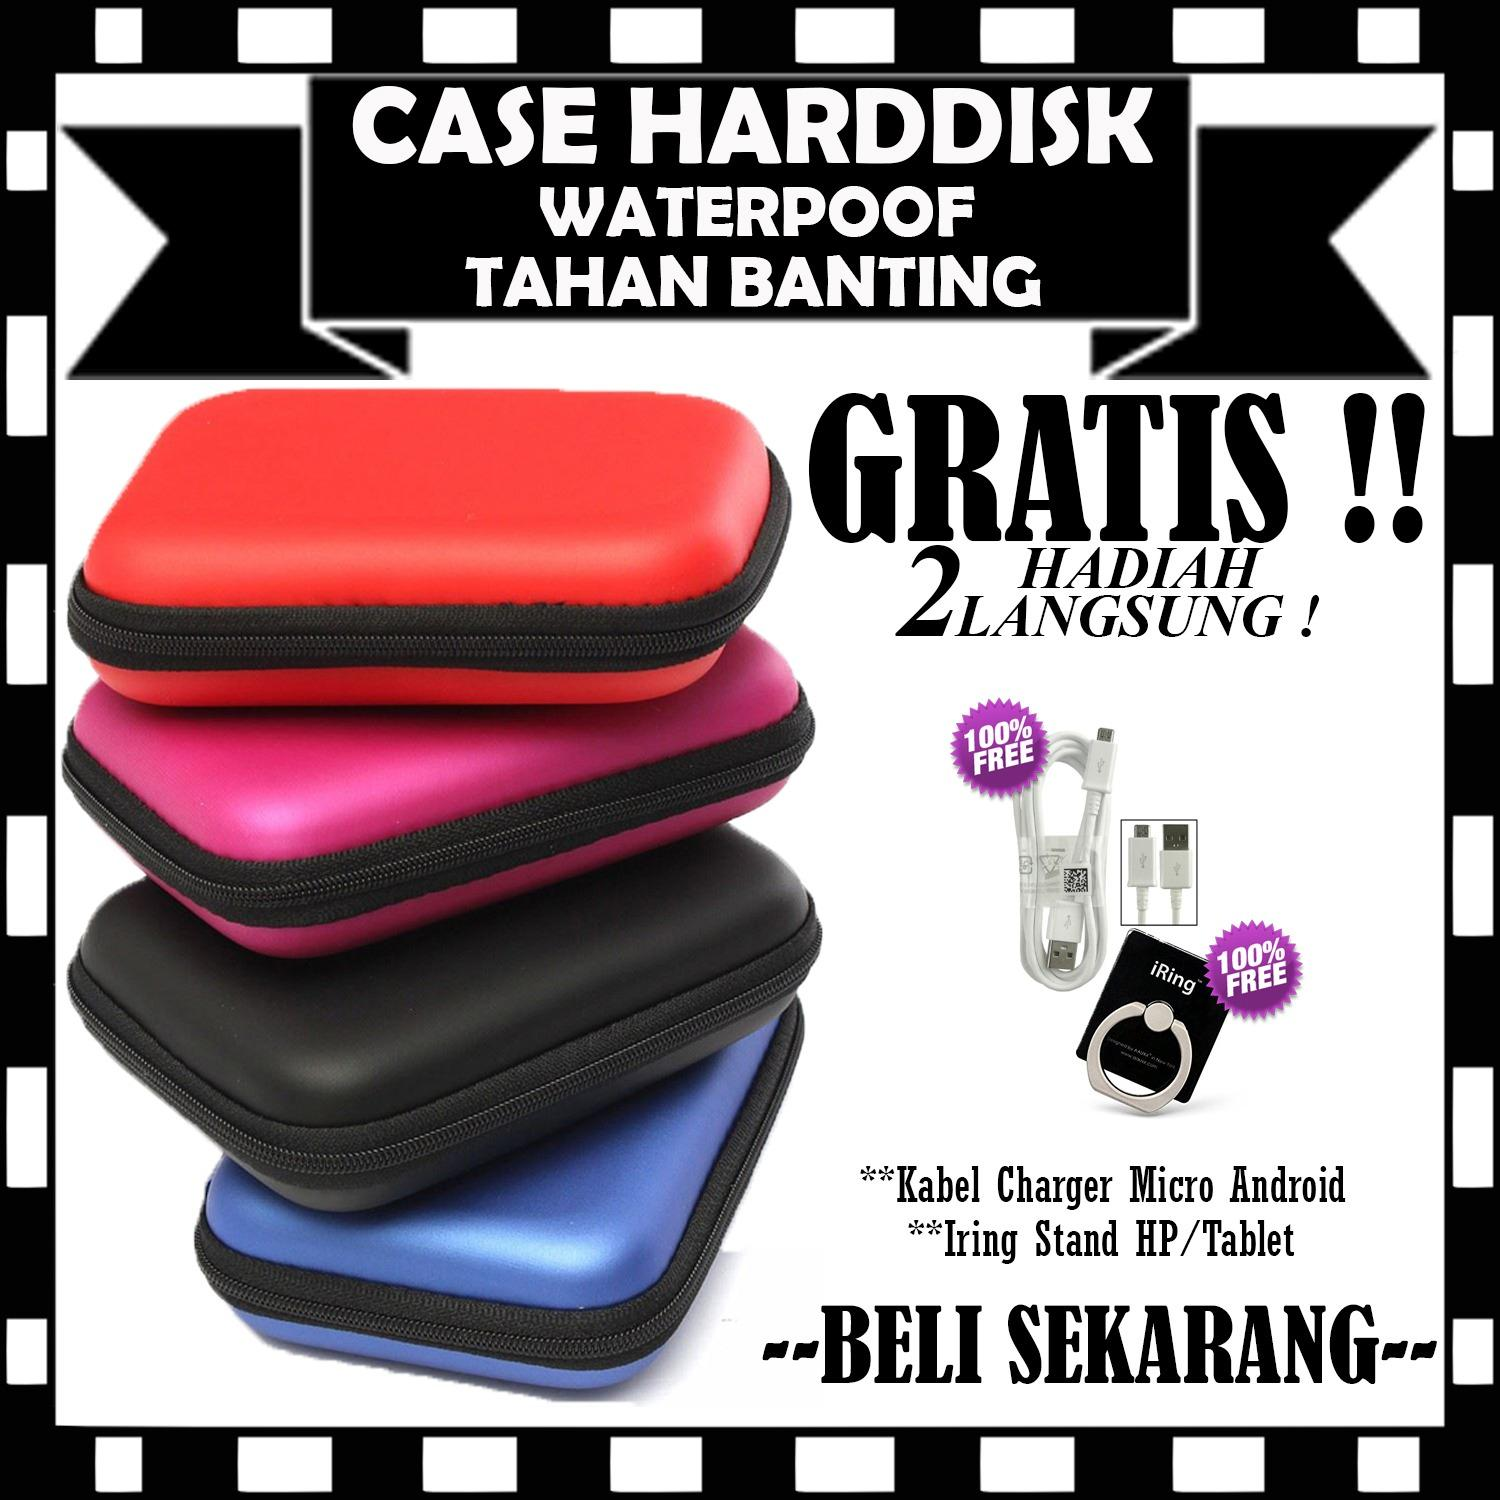 Promo Sale Sofcase Harddisk Hard Case Shockproof Tas Hardisk / Powerbank Tahan Banting for External HDD 2.5 inch Pouch Bag - GRATIS Kabel Charger Casan Micro Android & Iring Stand Hp/Tablet